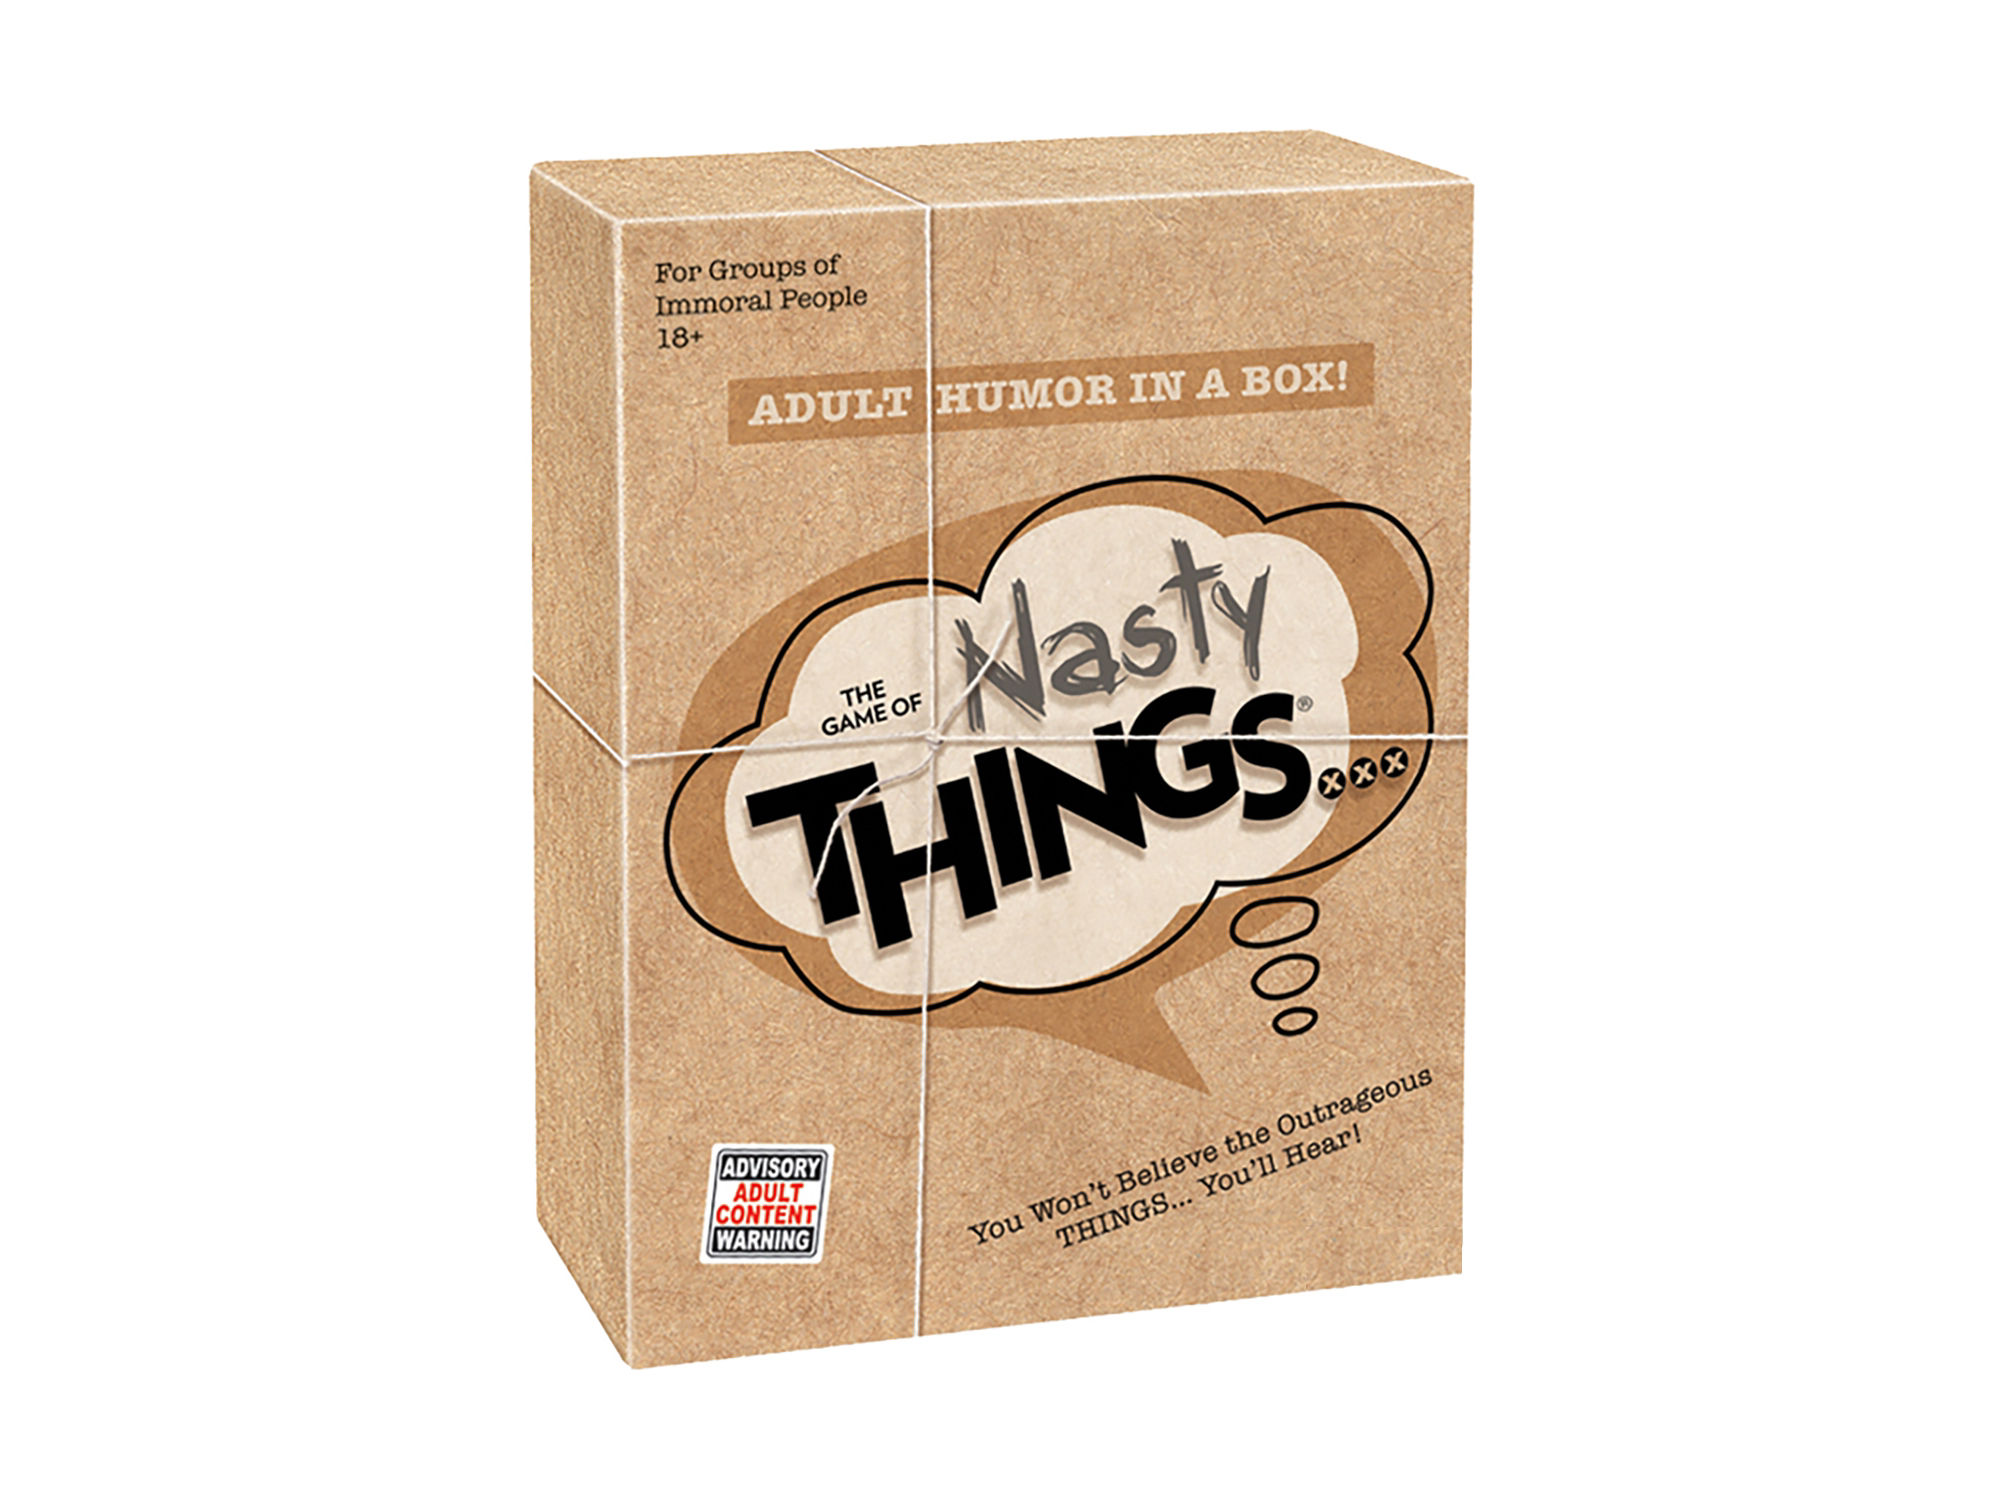 093514077101 Upc Patch Products Inc Nasty Things